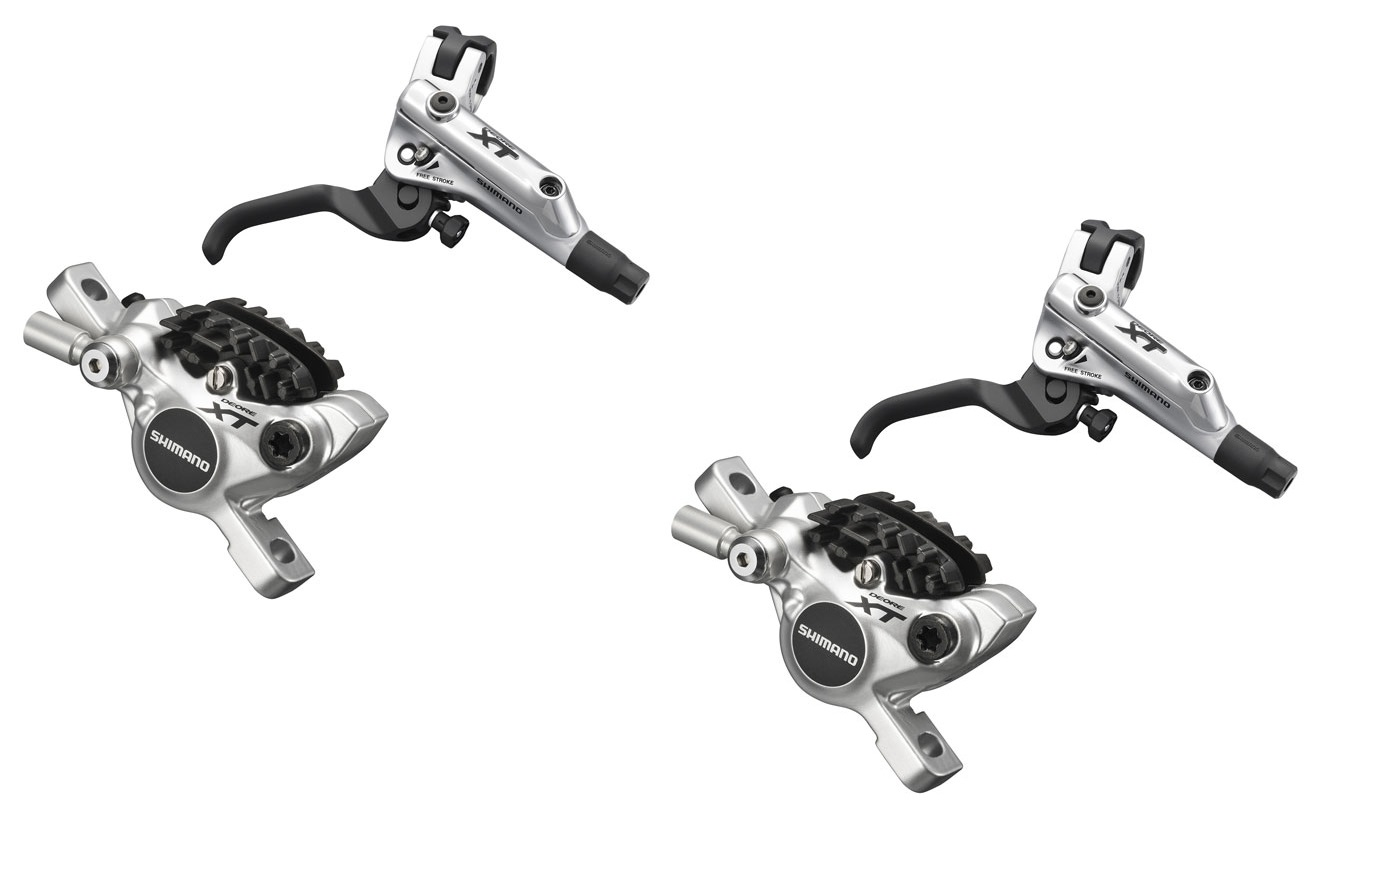 Shimano Xt M785 Pair Disc Brake Silver Radiator Without Rotor Pm